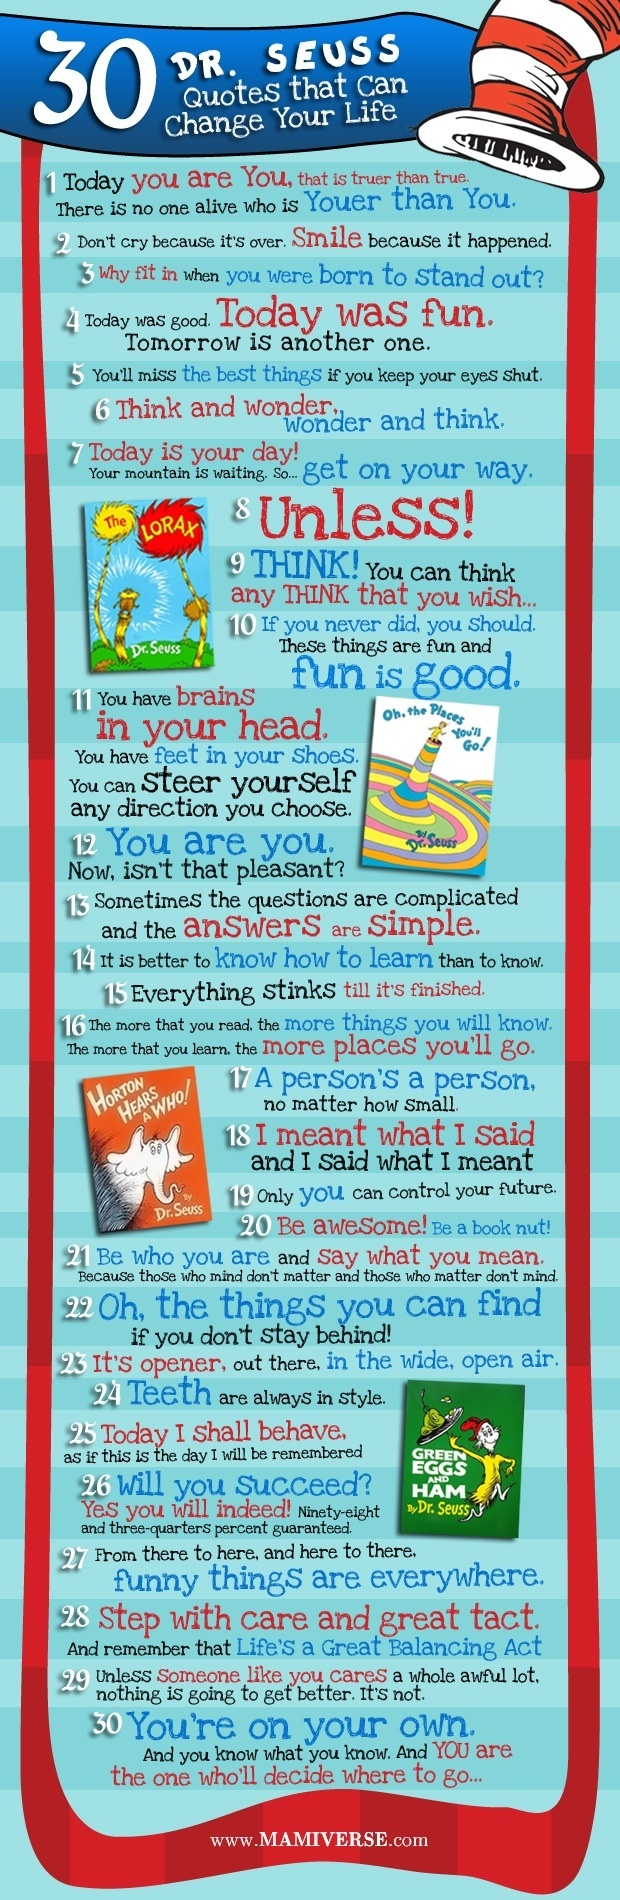 Dr Suess Never Lies: 56J are his words true to you?